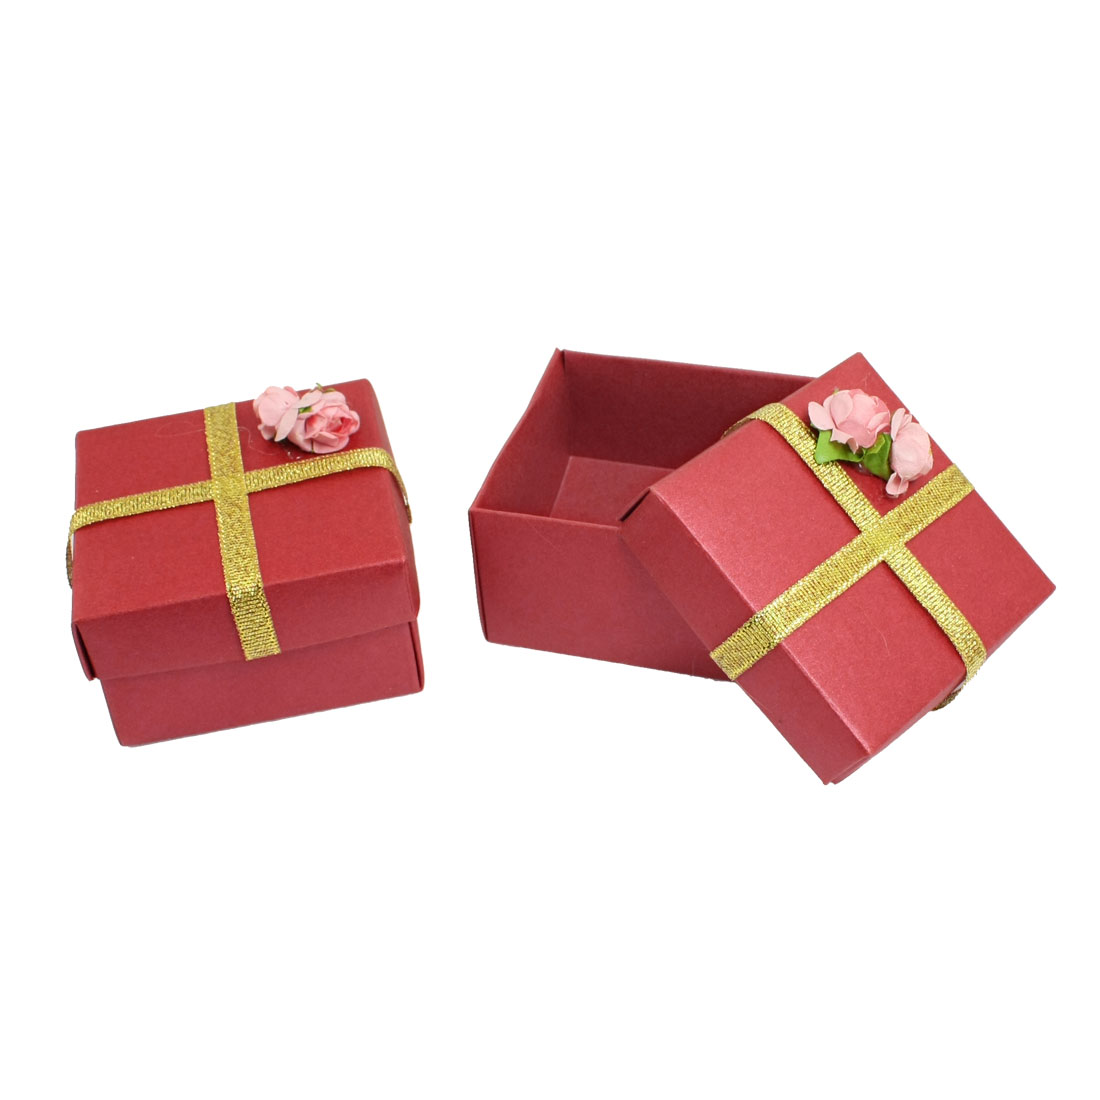 Wedding Red Square Shaped Paper Gift Watch Jewelry Storage Box 2 Pcs